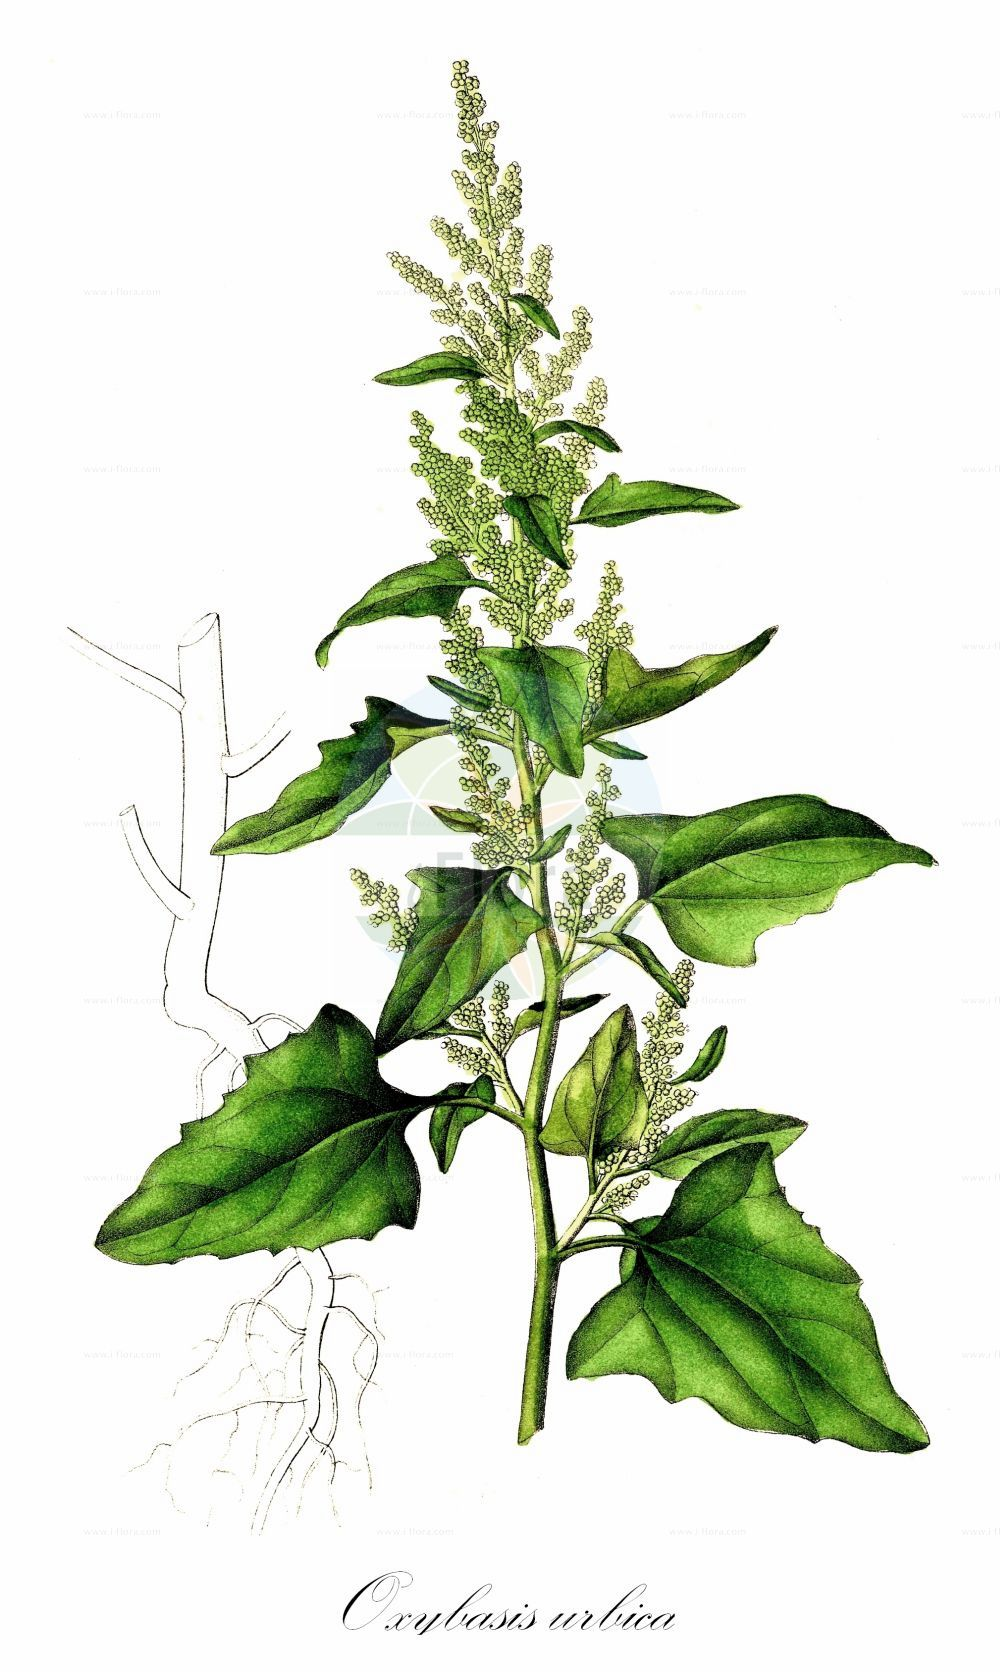 Historische Abbildung von Oxybasis urbica (Keilblaettriger Strassen-Gaensefuss - Upright Goosefoot). Das Bild zeigt Blatt, Bluete, Frucht und Same. ---- Historical Drawing of Oxybasis urbica (Keilblaettriger Strassen-Gaensefuss - Upright Goosefoot).The image is showing leaf, flower, fruit and seed.(Oxybasis urbica,Keilblaettriger Strassen-Gaensefuss,Upright Goosefoot,Chenopodium deltoideum,Chenopodium intermedium,Chenopodium melanospermum,Chenopodium rhombifolium,Chenopodium urbicum,,Gewoehnlicher Strassen-Gaensefuss,Stadt-Gaensefuss,Strassen-Gaensefuss,City Goosefoot,Triangular-leaved Goosefoot,Oxybasis,Amaranthaceae,Fuchsschwanzgewaechse,Pigweed family,Blatt,Bluete,Frucht,Same,leaf,flower,fruit,seed,Dietrich (1833-1844))